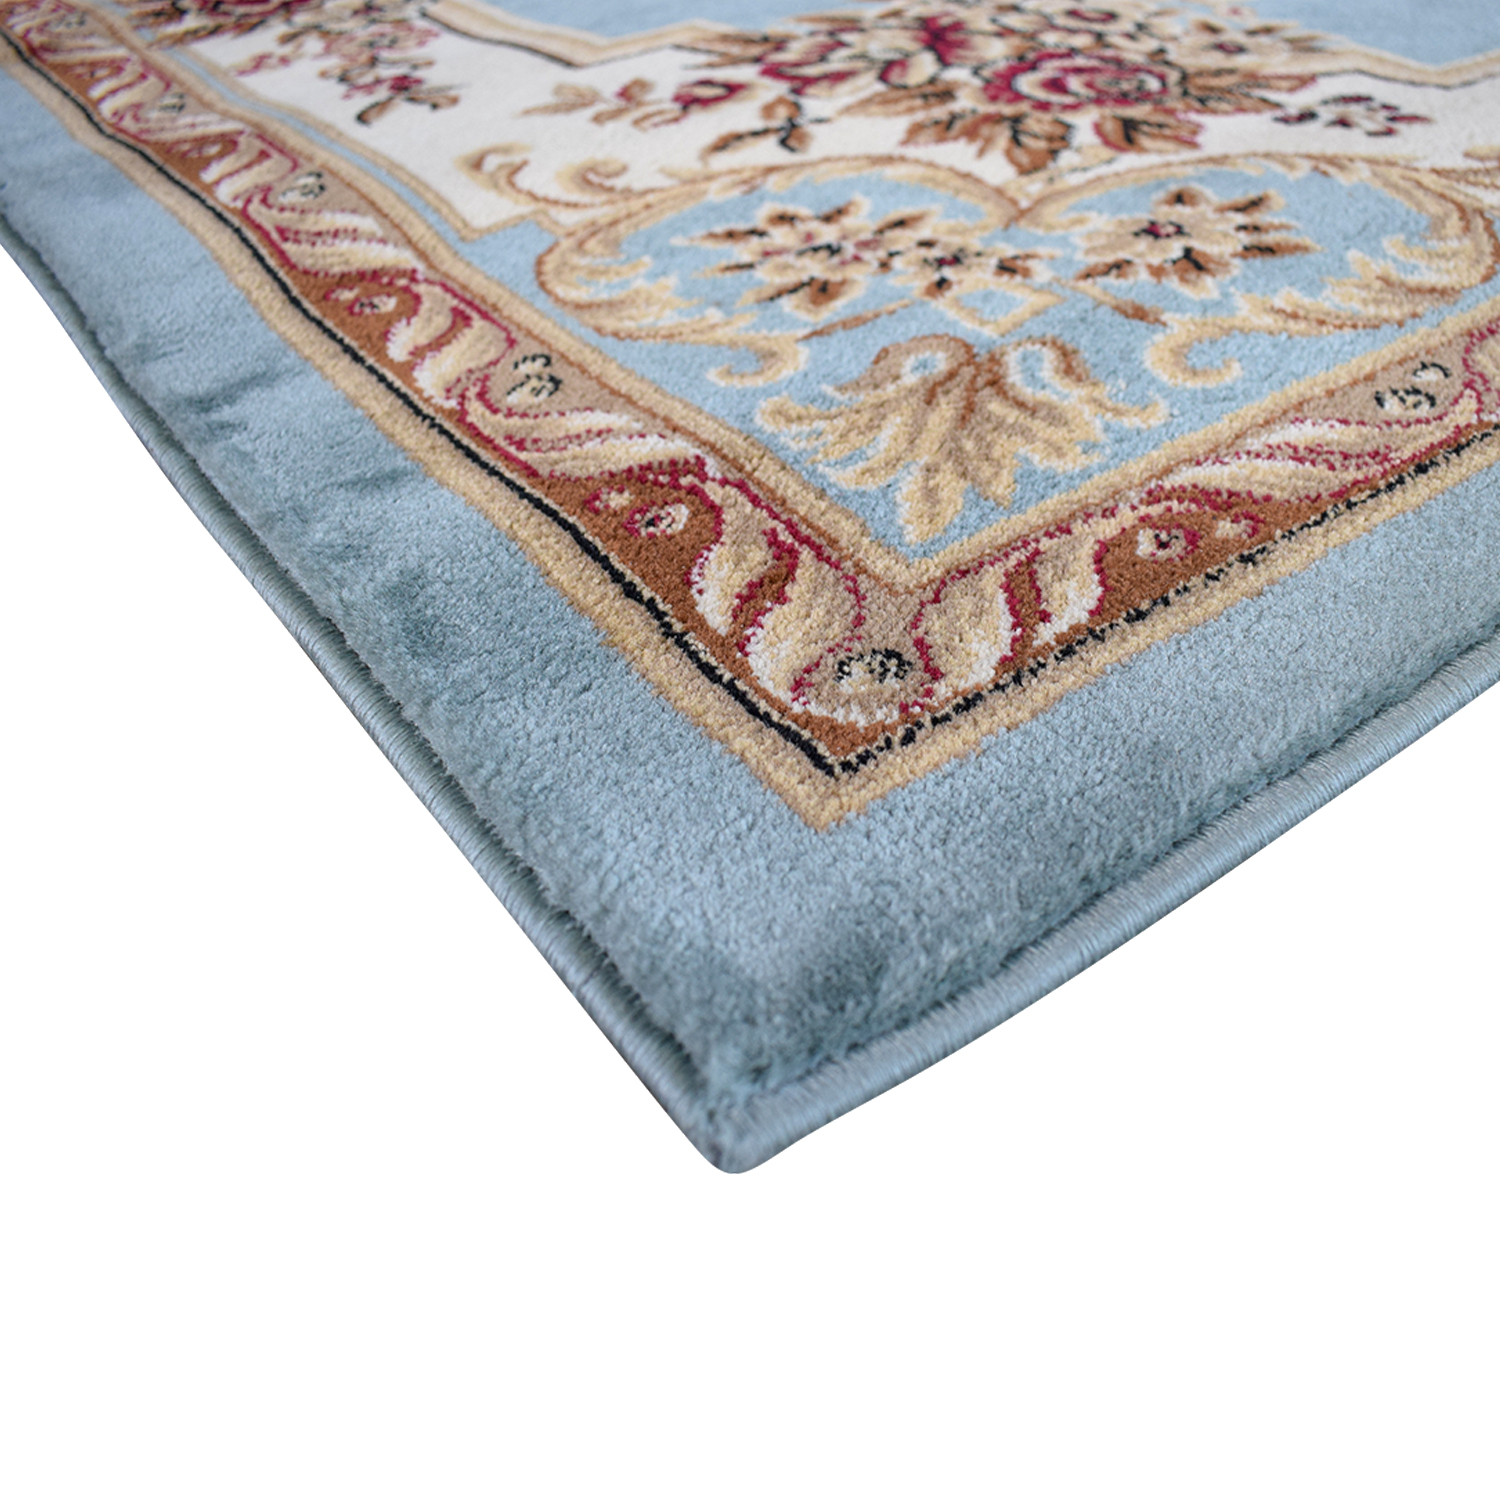 buy Well Woven Timeless Le Petit Palais Blue Floral Rug Well Woven Rugs